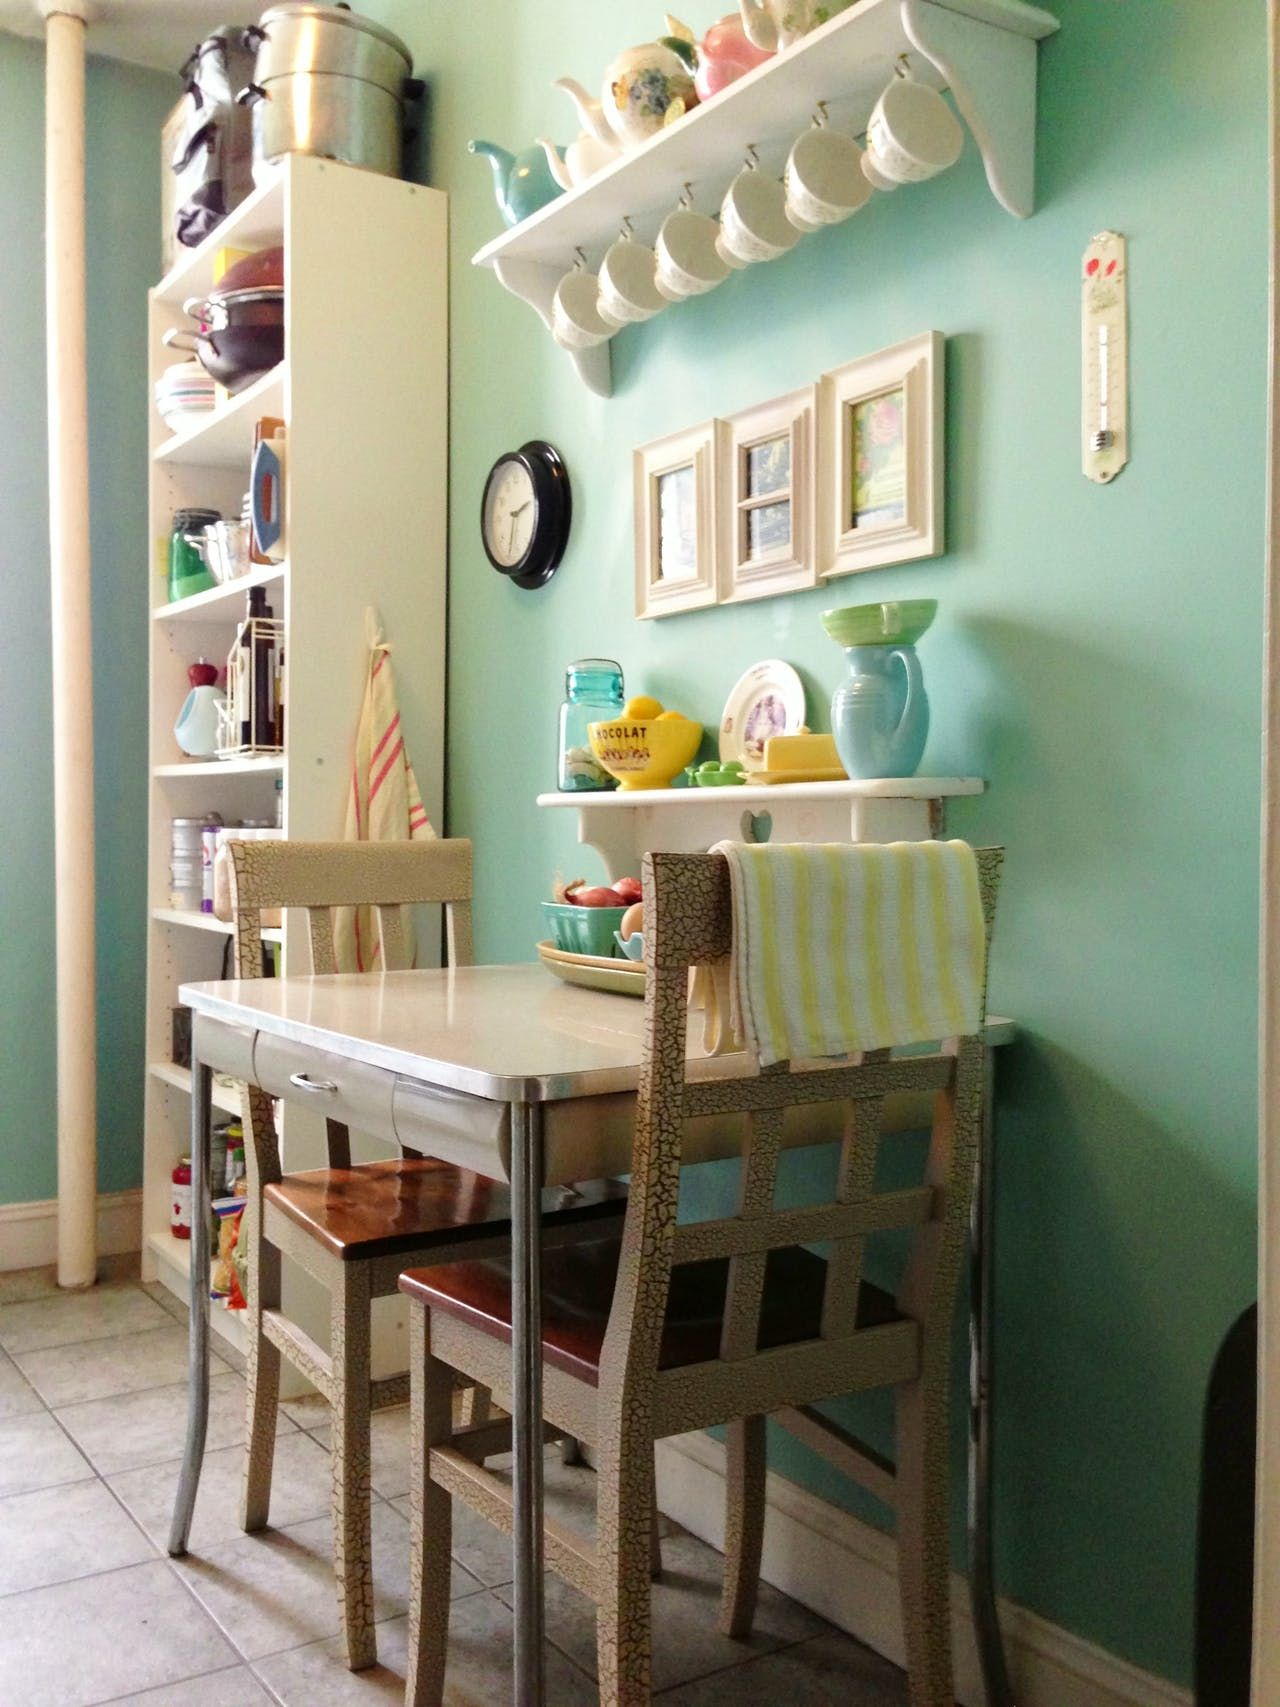 15 Small Space Kitchens, Tips, And Storage Solutions That Inspired